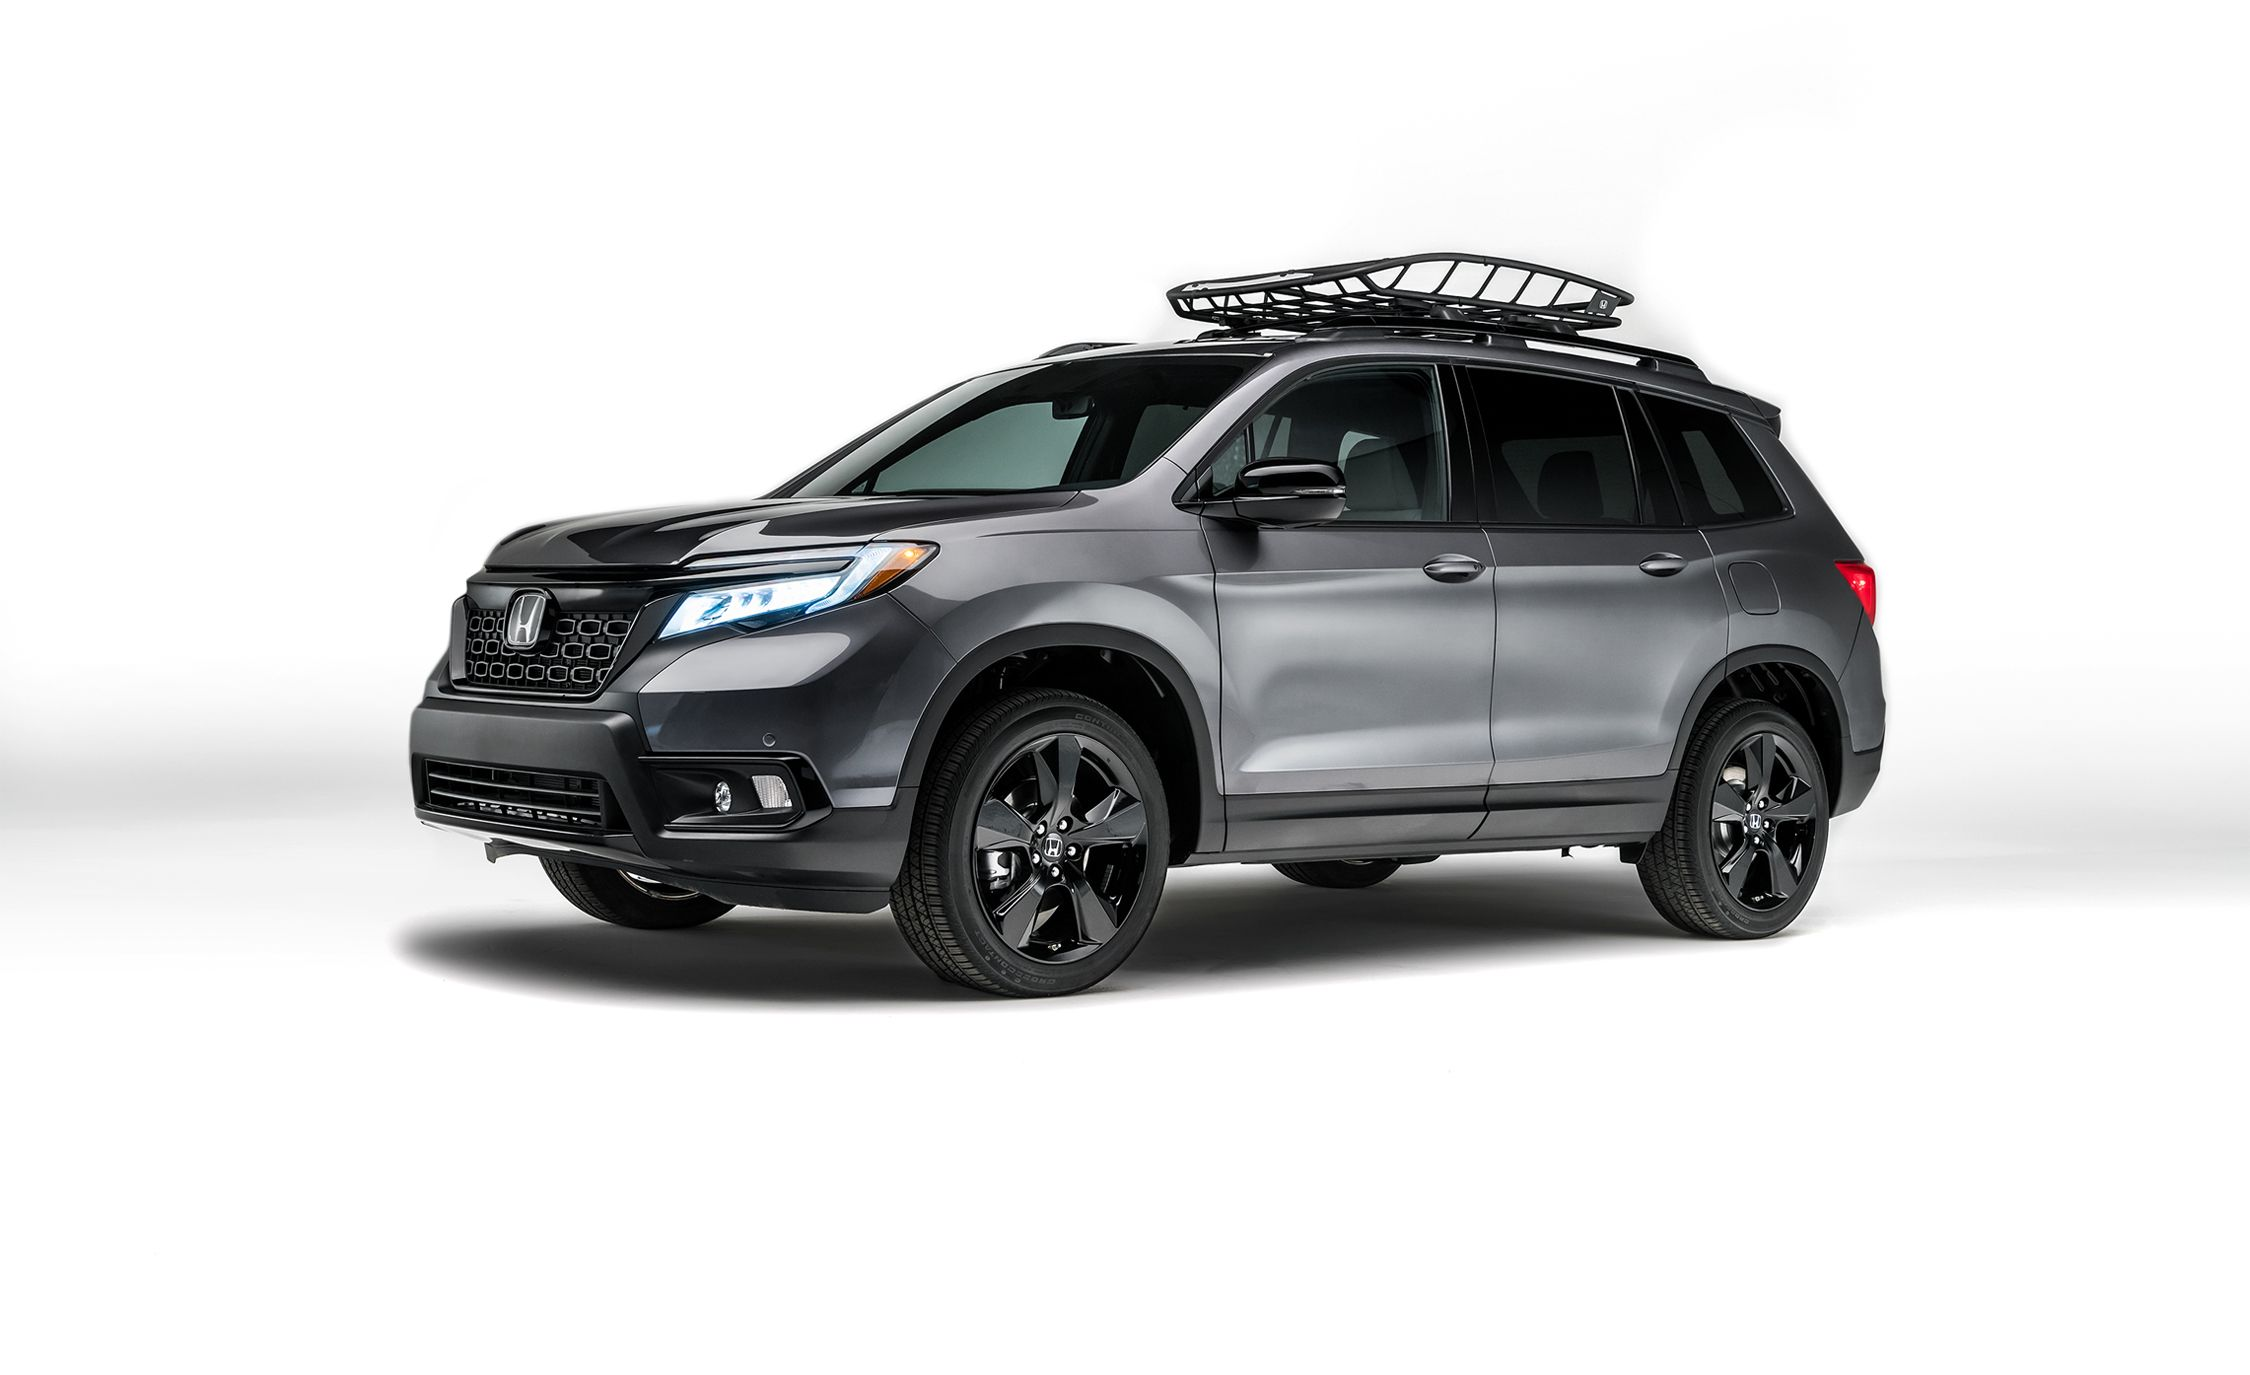 Mazda Build And Price Canada >> 2019 Honda Passport – All-New Two-Row Mid-Size Crossover